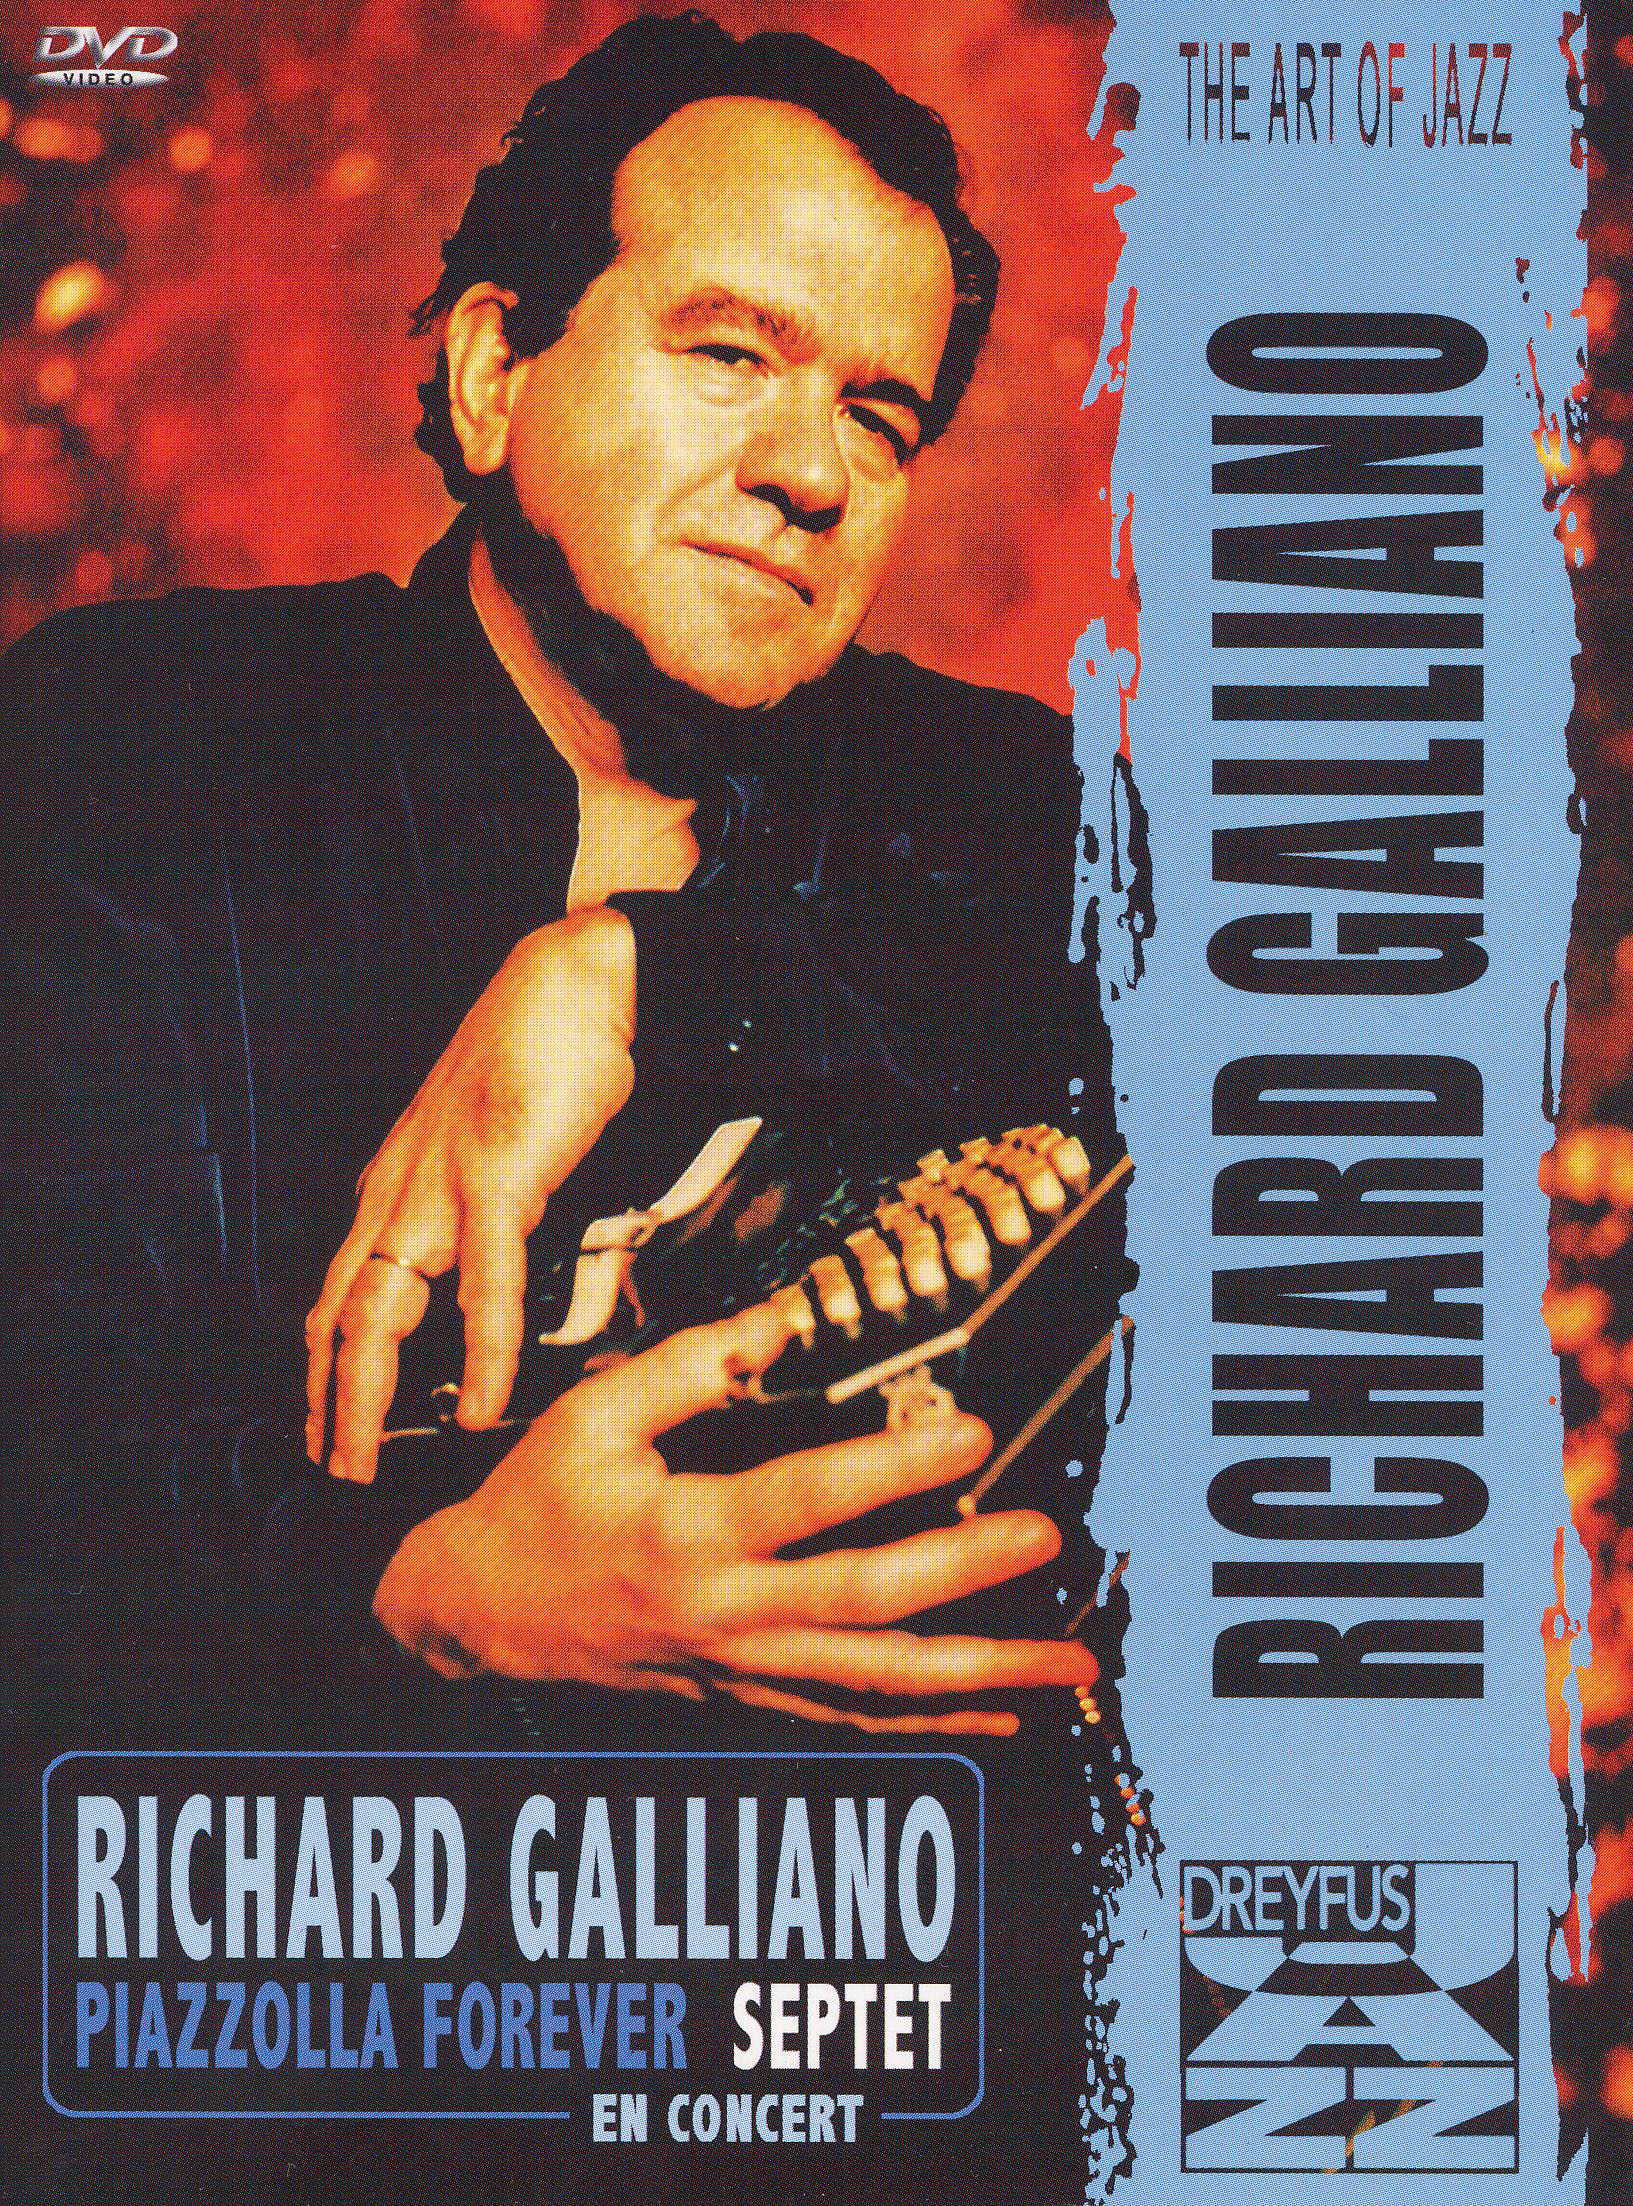 Richard Galliano: Piazzolla Forever